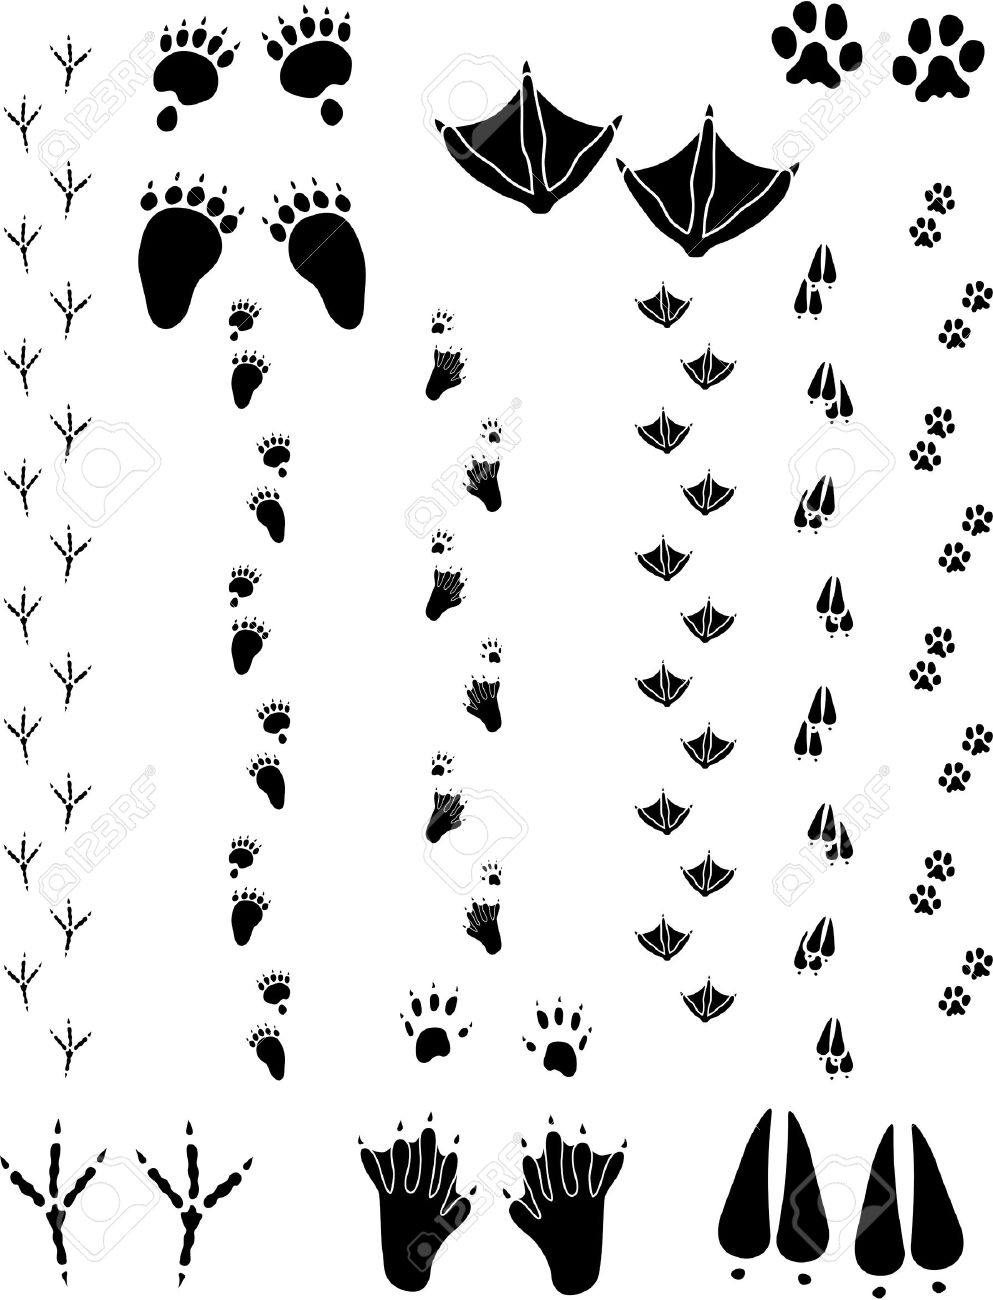 paw prints and tracks of six different animals top row left